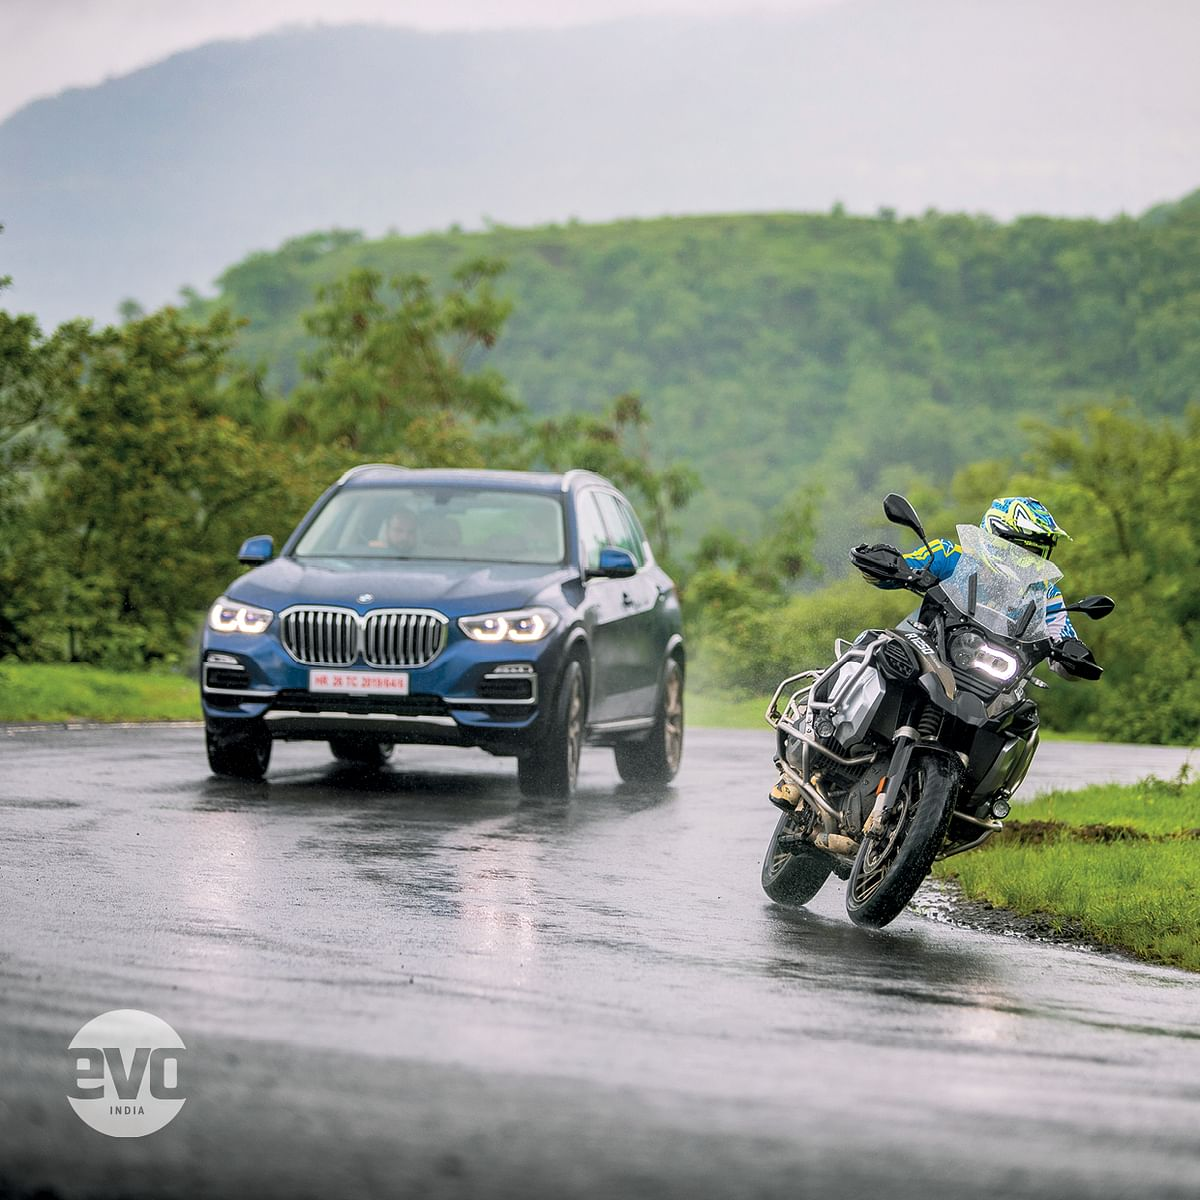 Blood brothers - BMW X5 and R 1250 GS